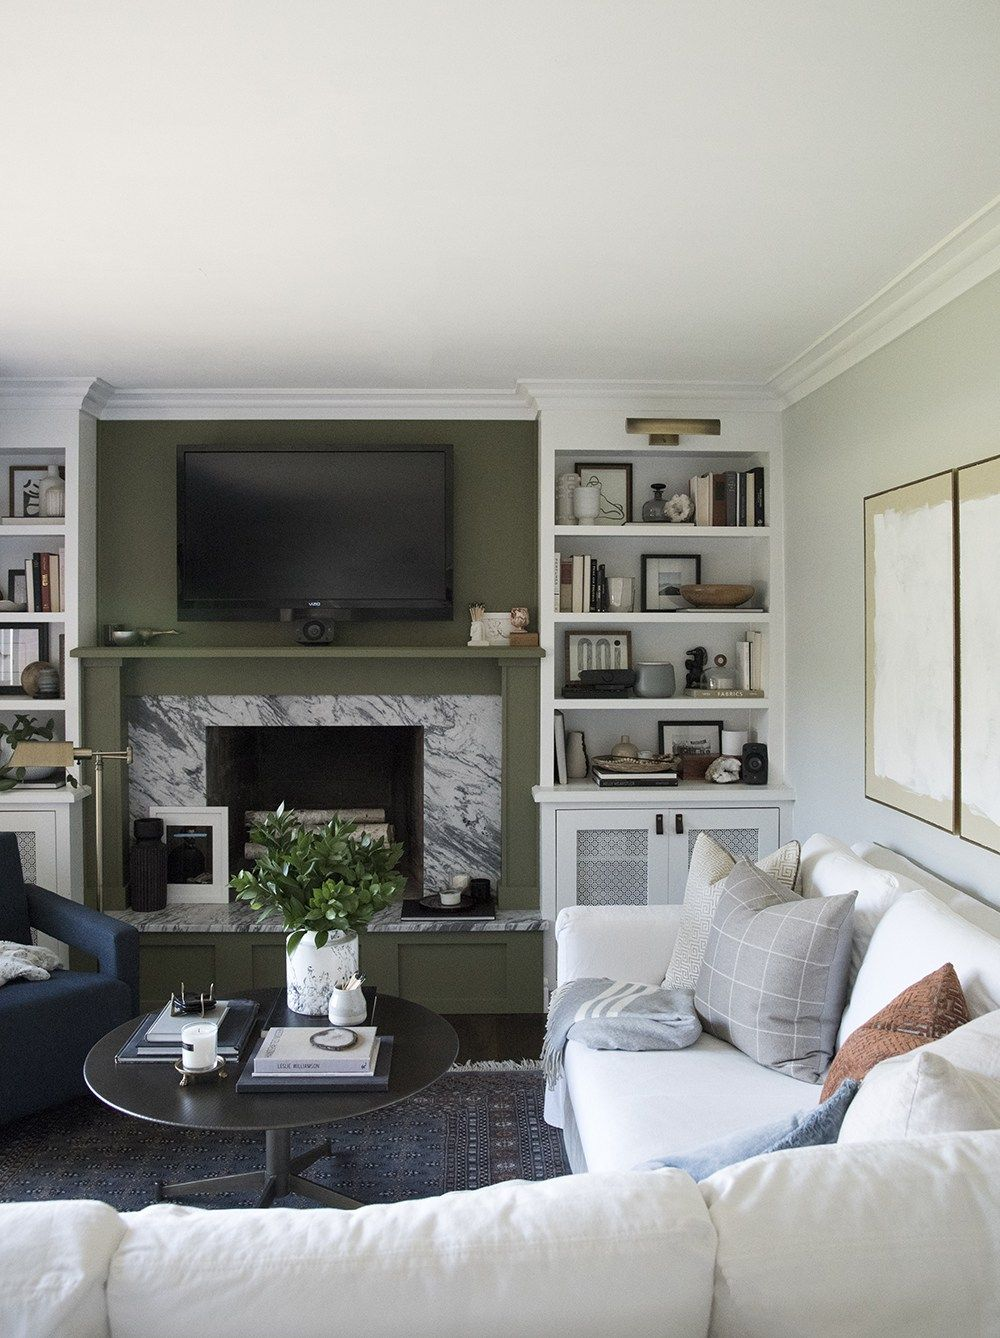 Design Discussion : TV Over the Fireplace | Tiny living ...